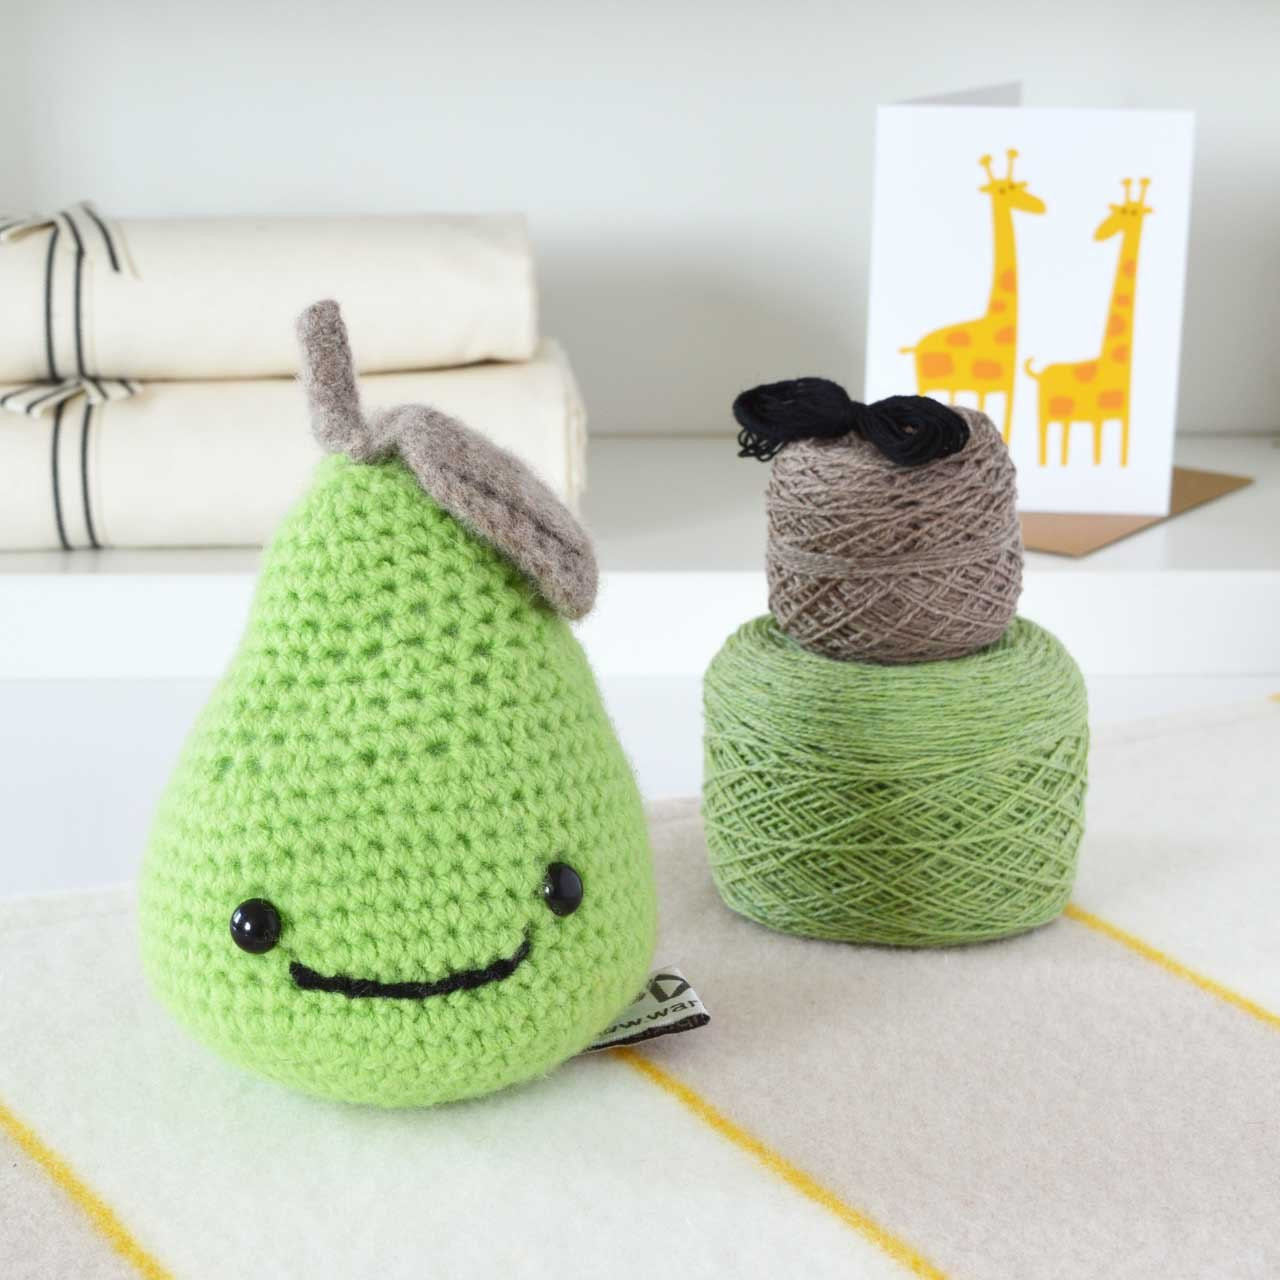 New Diy Kit Crochet Luxury Smiley Pear Amigurumi Crochet Kit Crochet Kit for Beginners Of Unique 40 Models Crochet Kit for Beginners